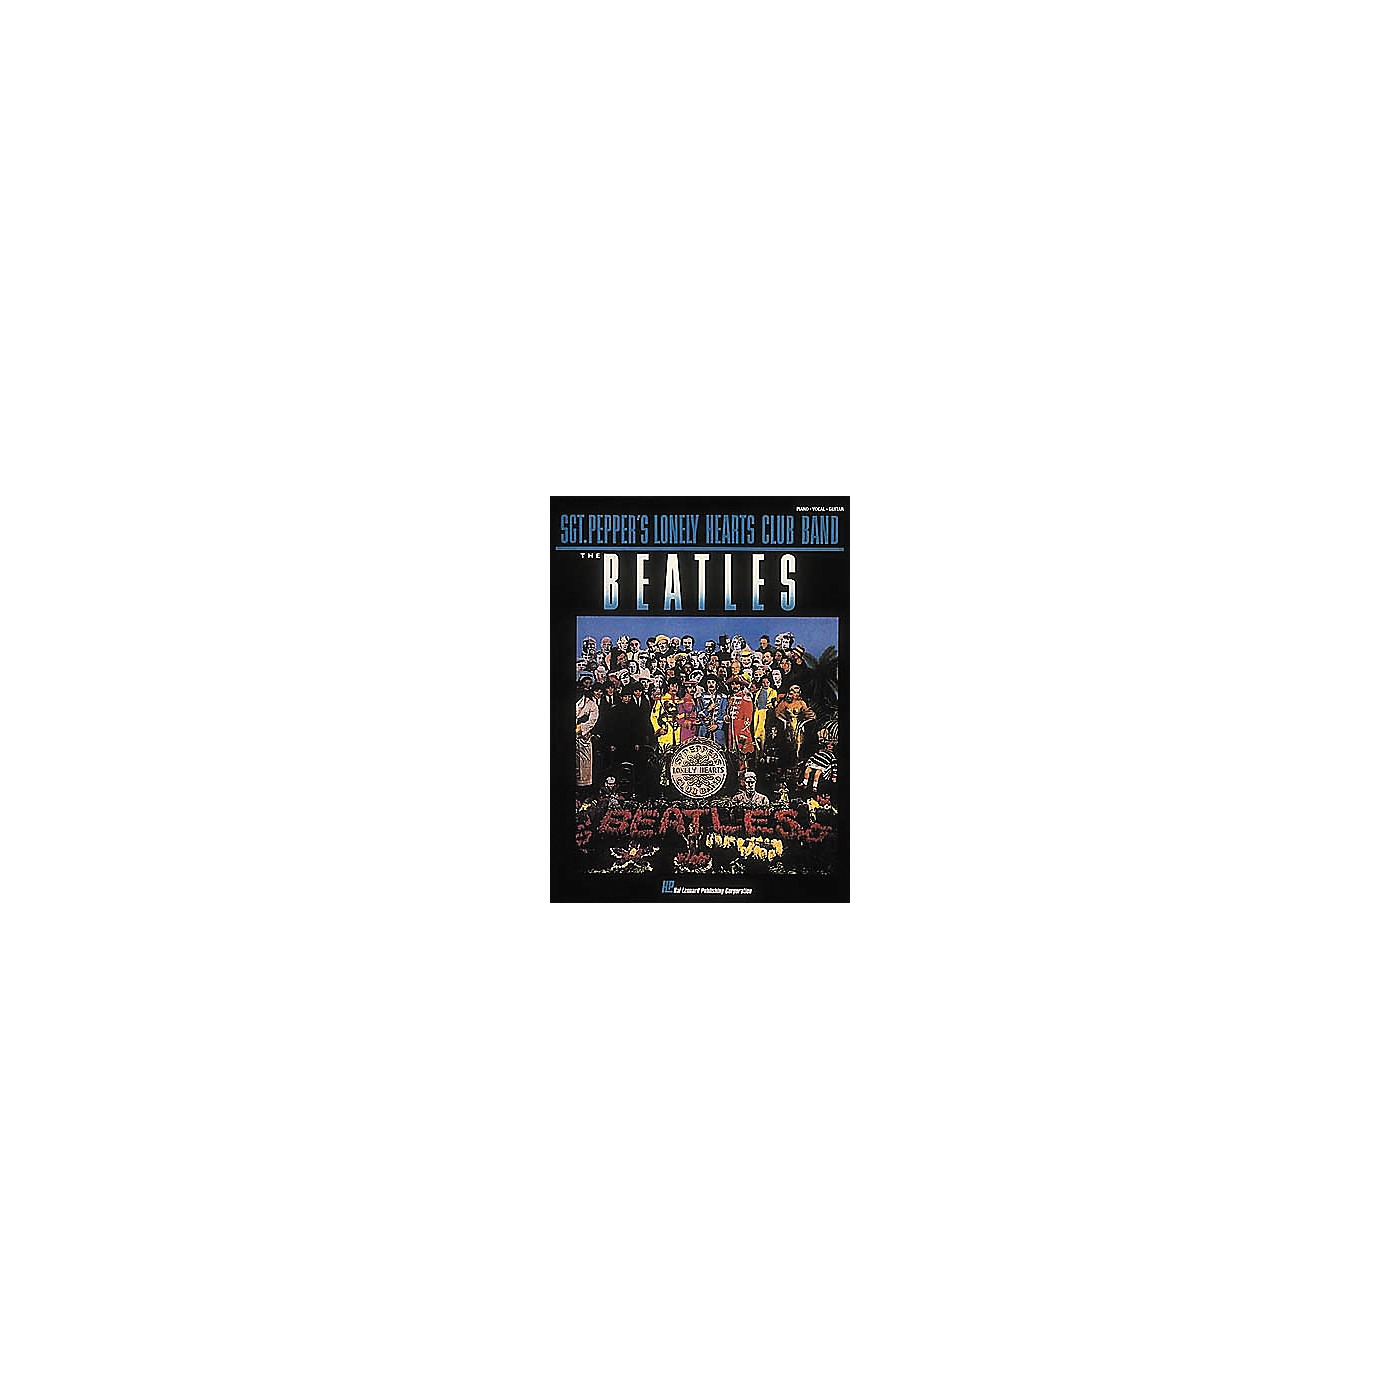 Hal Leonard The Beatles Sgt. Pepper's Lonely Hearts Club Band Piano, Vocal, Guitar Songbook thumbnail